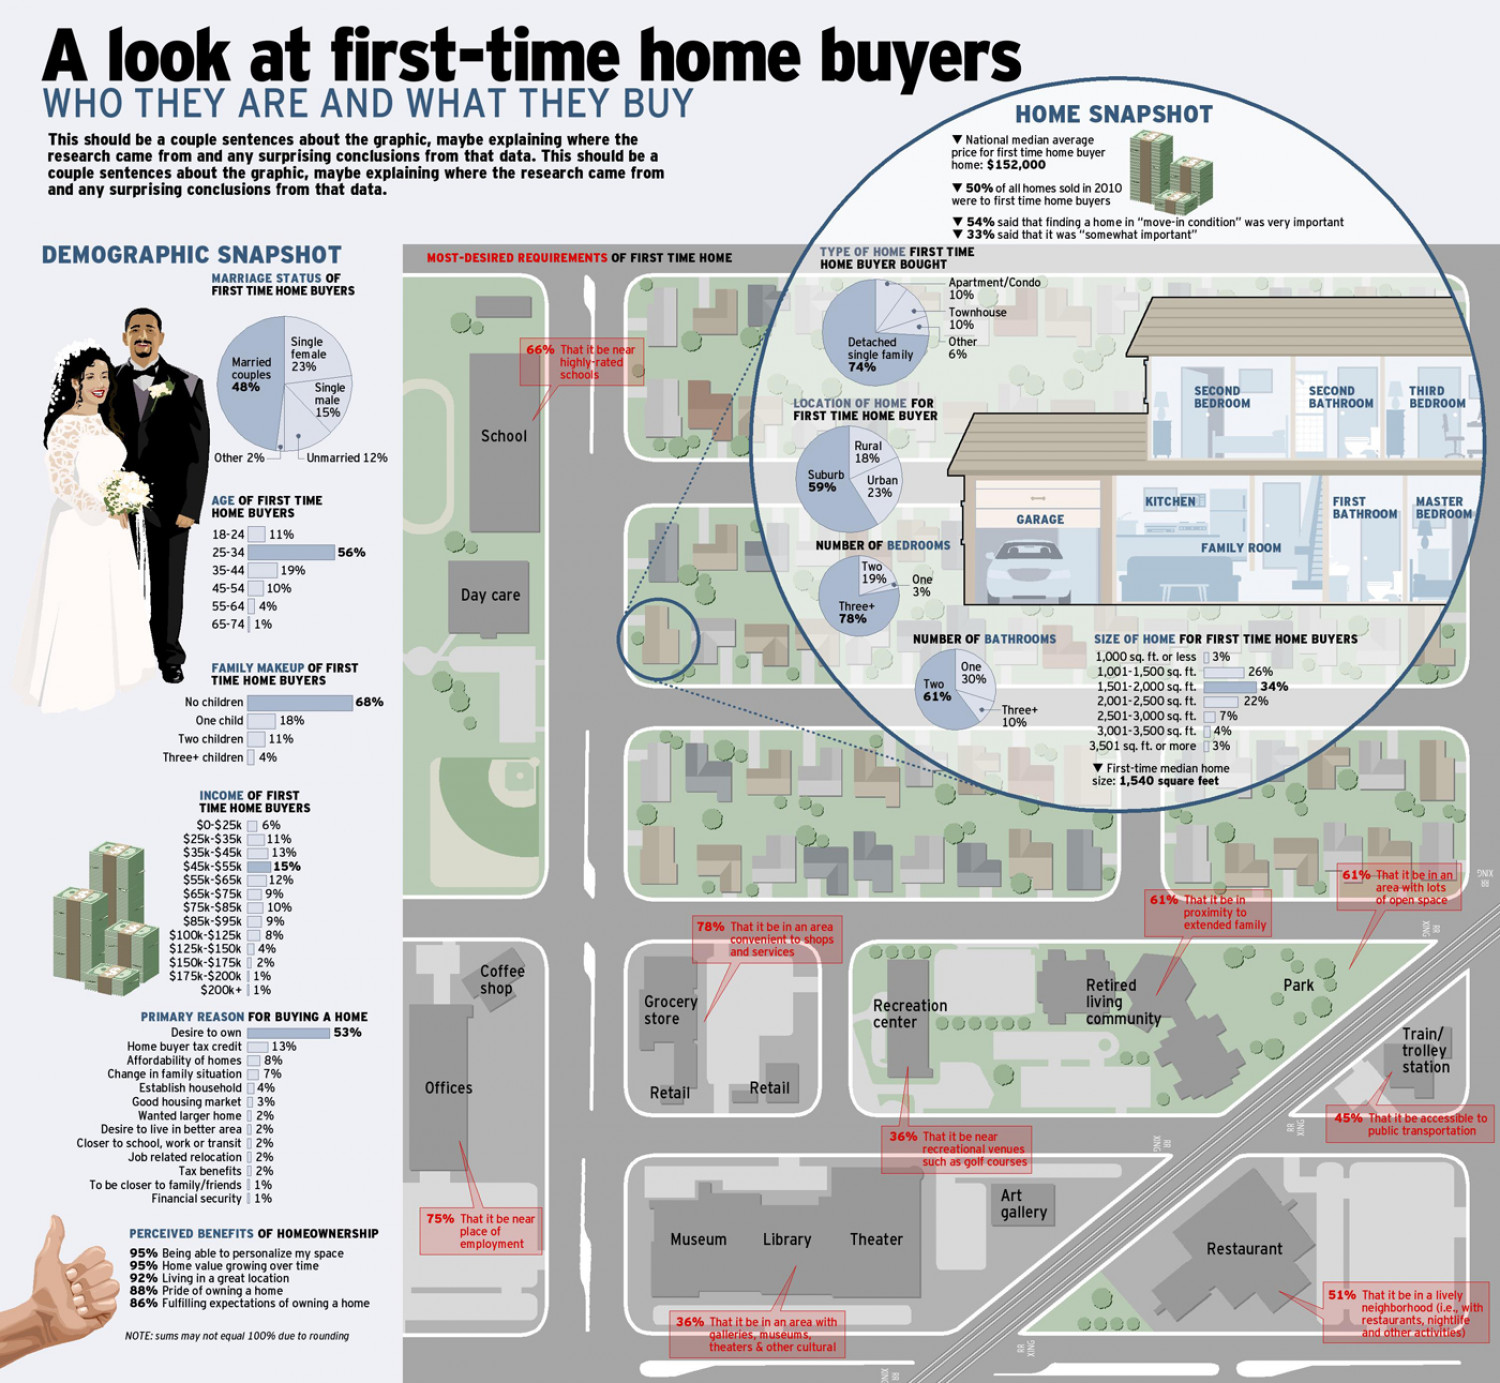 A Look at First-Time Home Buyers Infographic